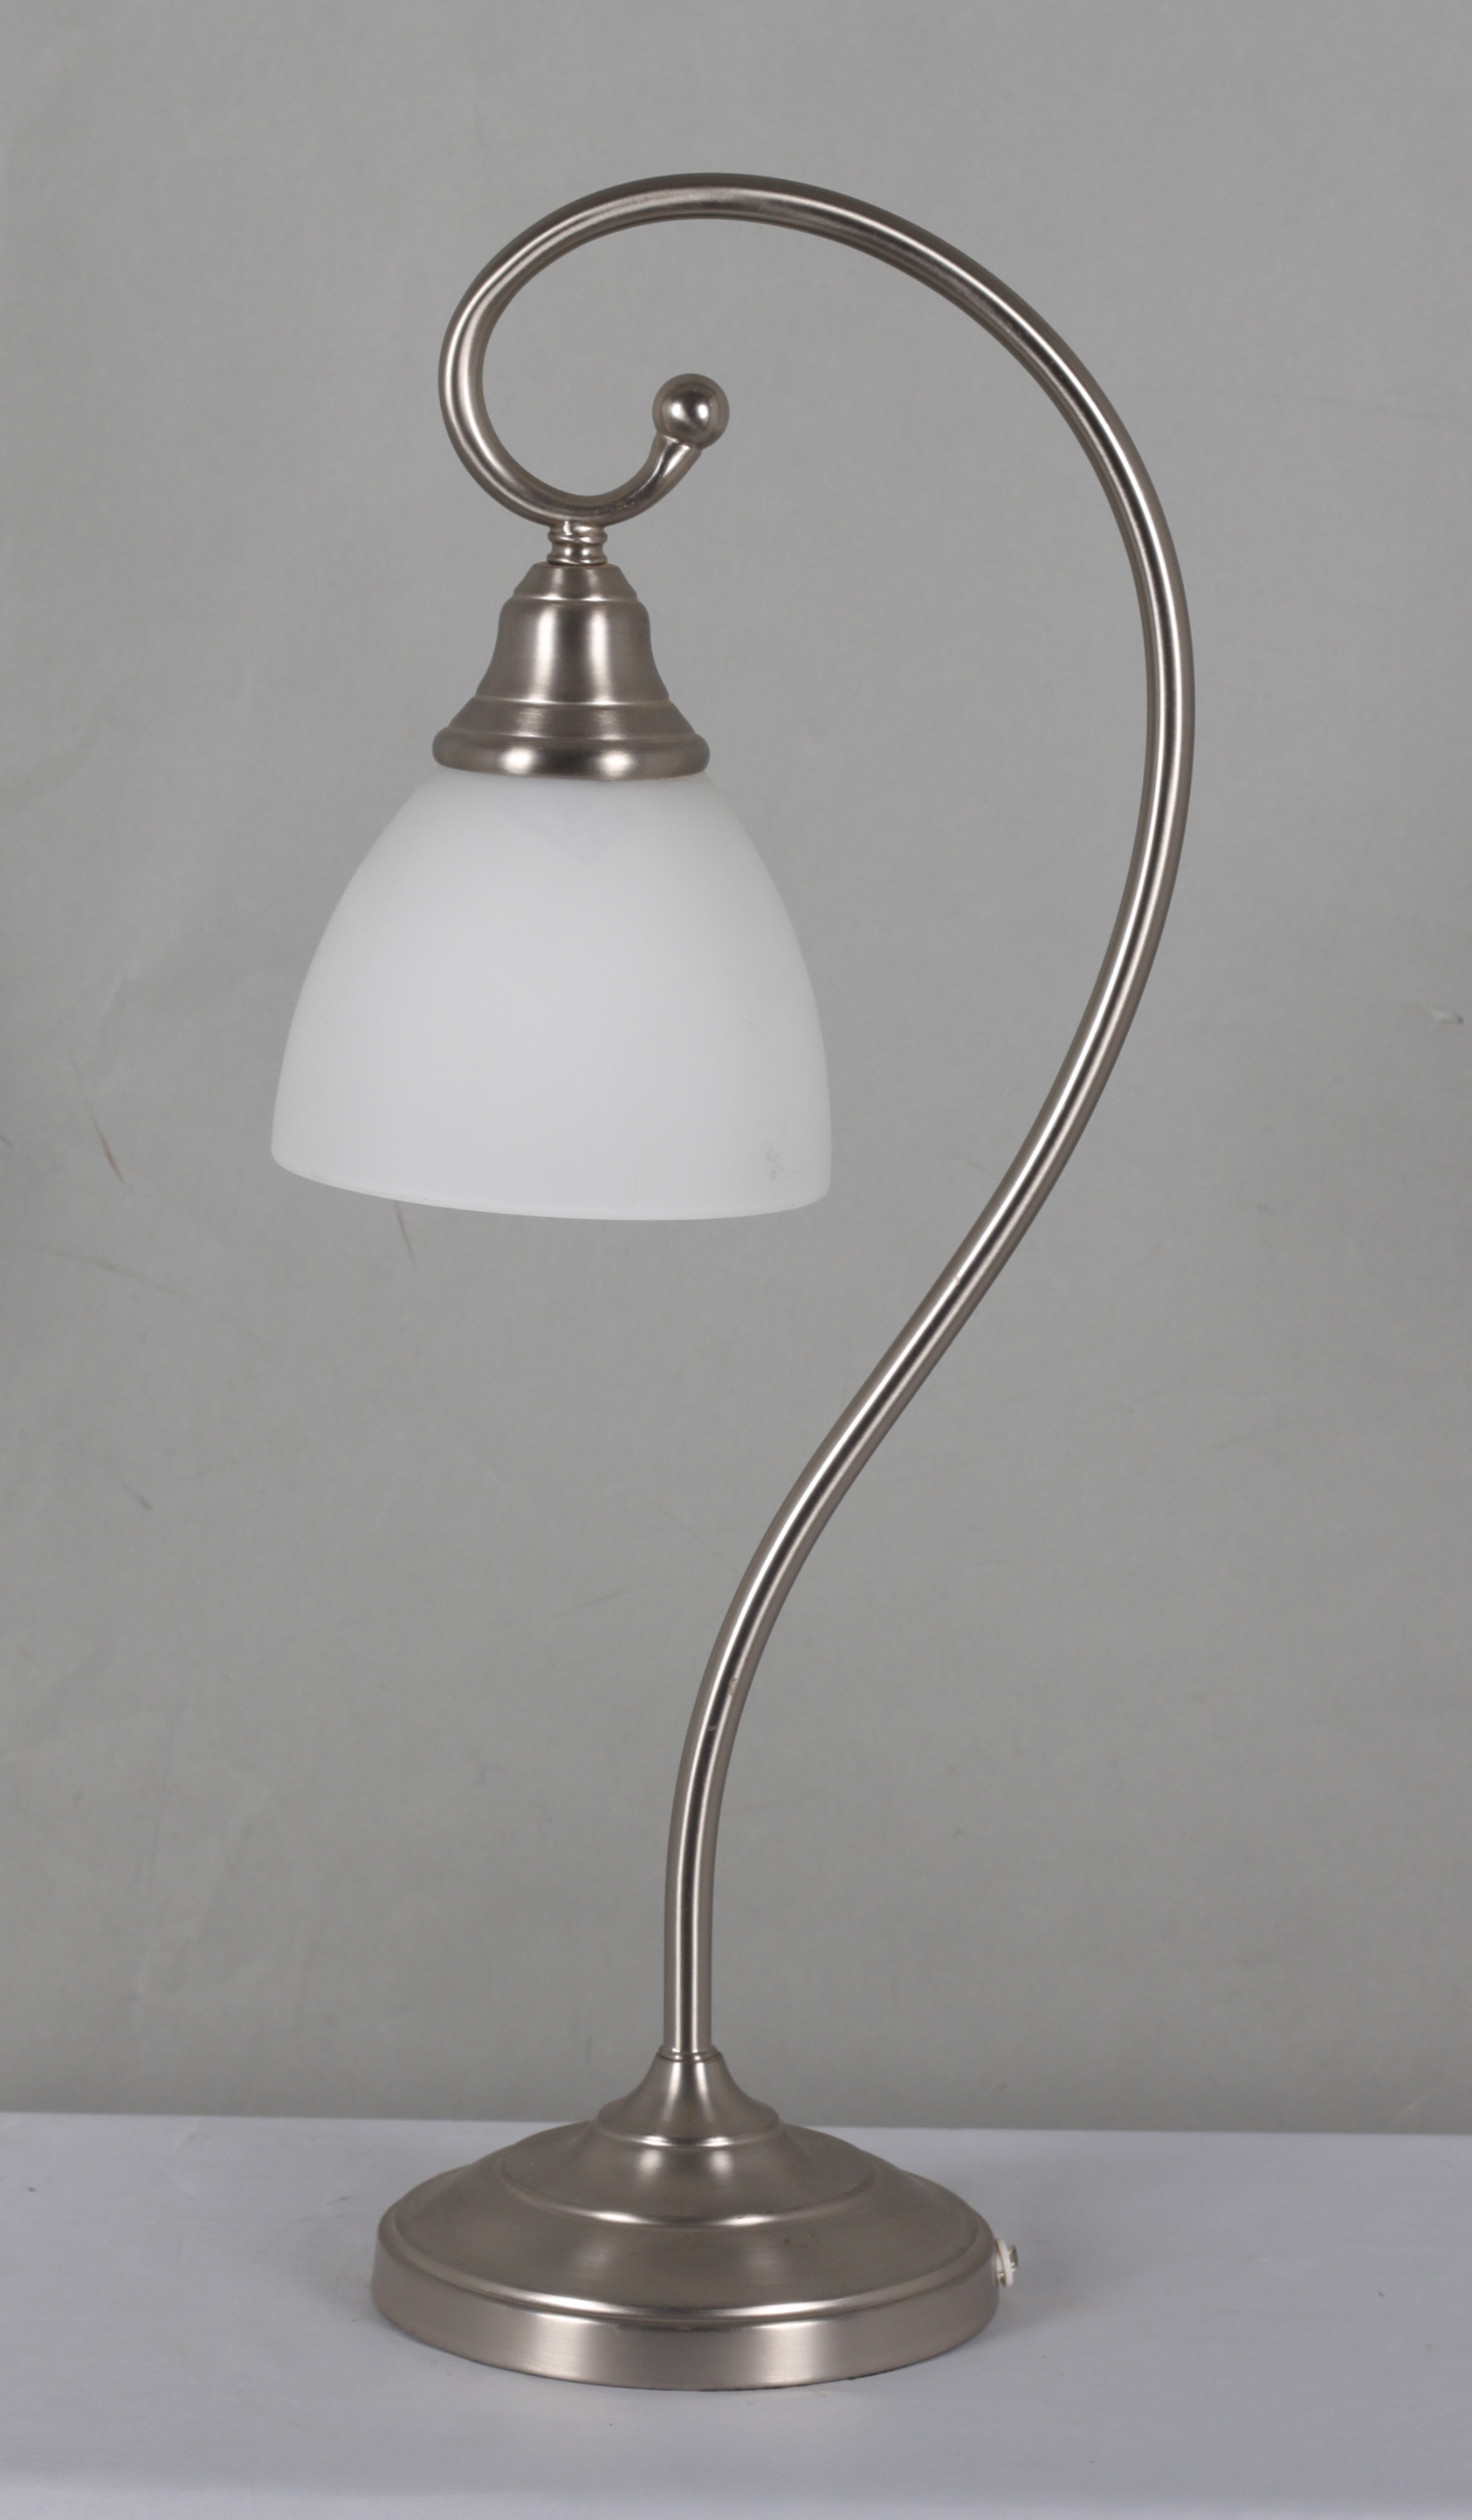 Home Source Harold Table Lamp With White Frosted Lamp Shade And Curved  Silver Base